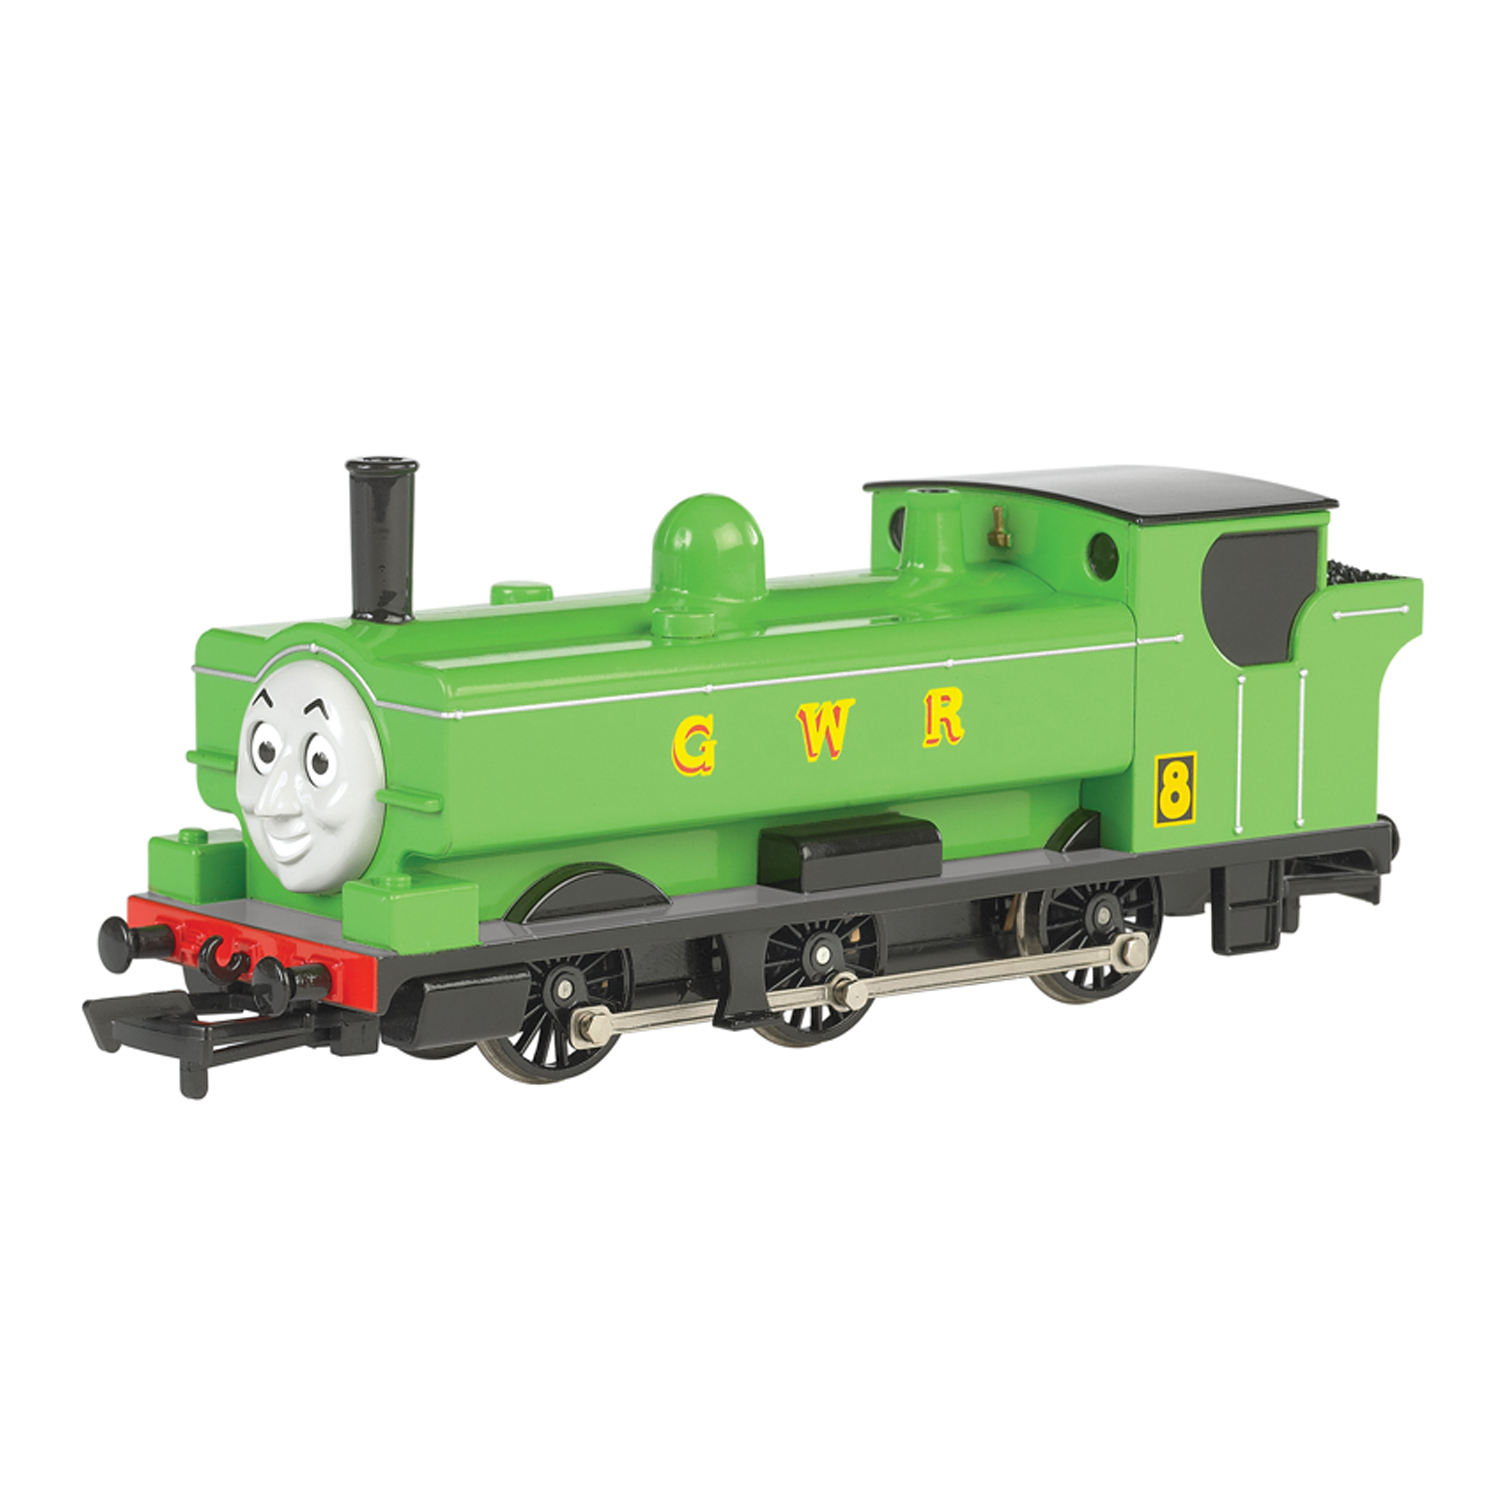 Bachmann Trains Thomas and Friends Green Duck Train Character Toy Moving Eyes